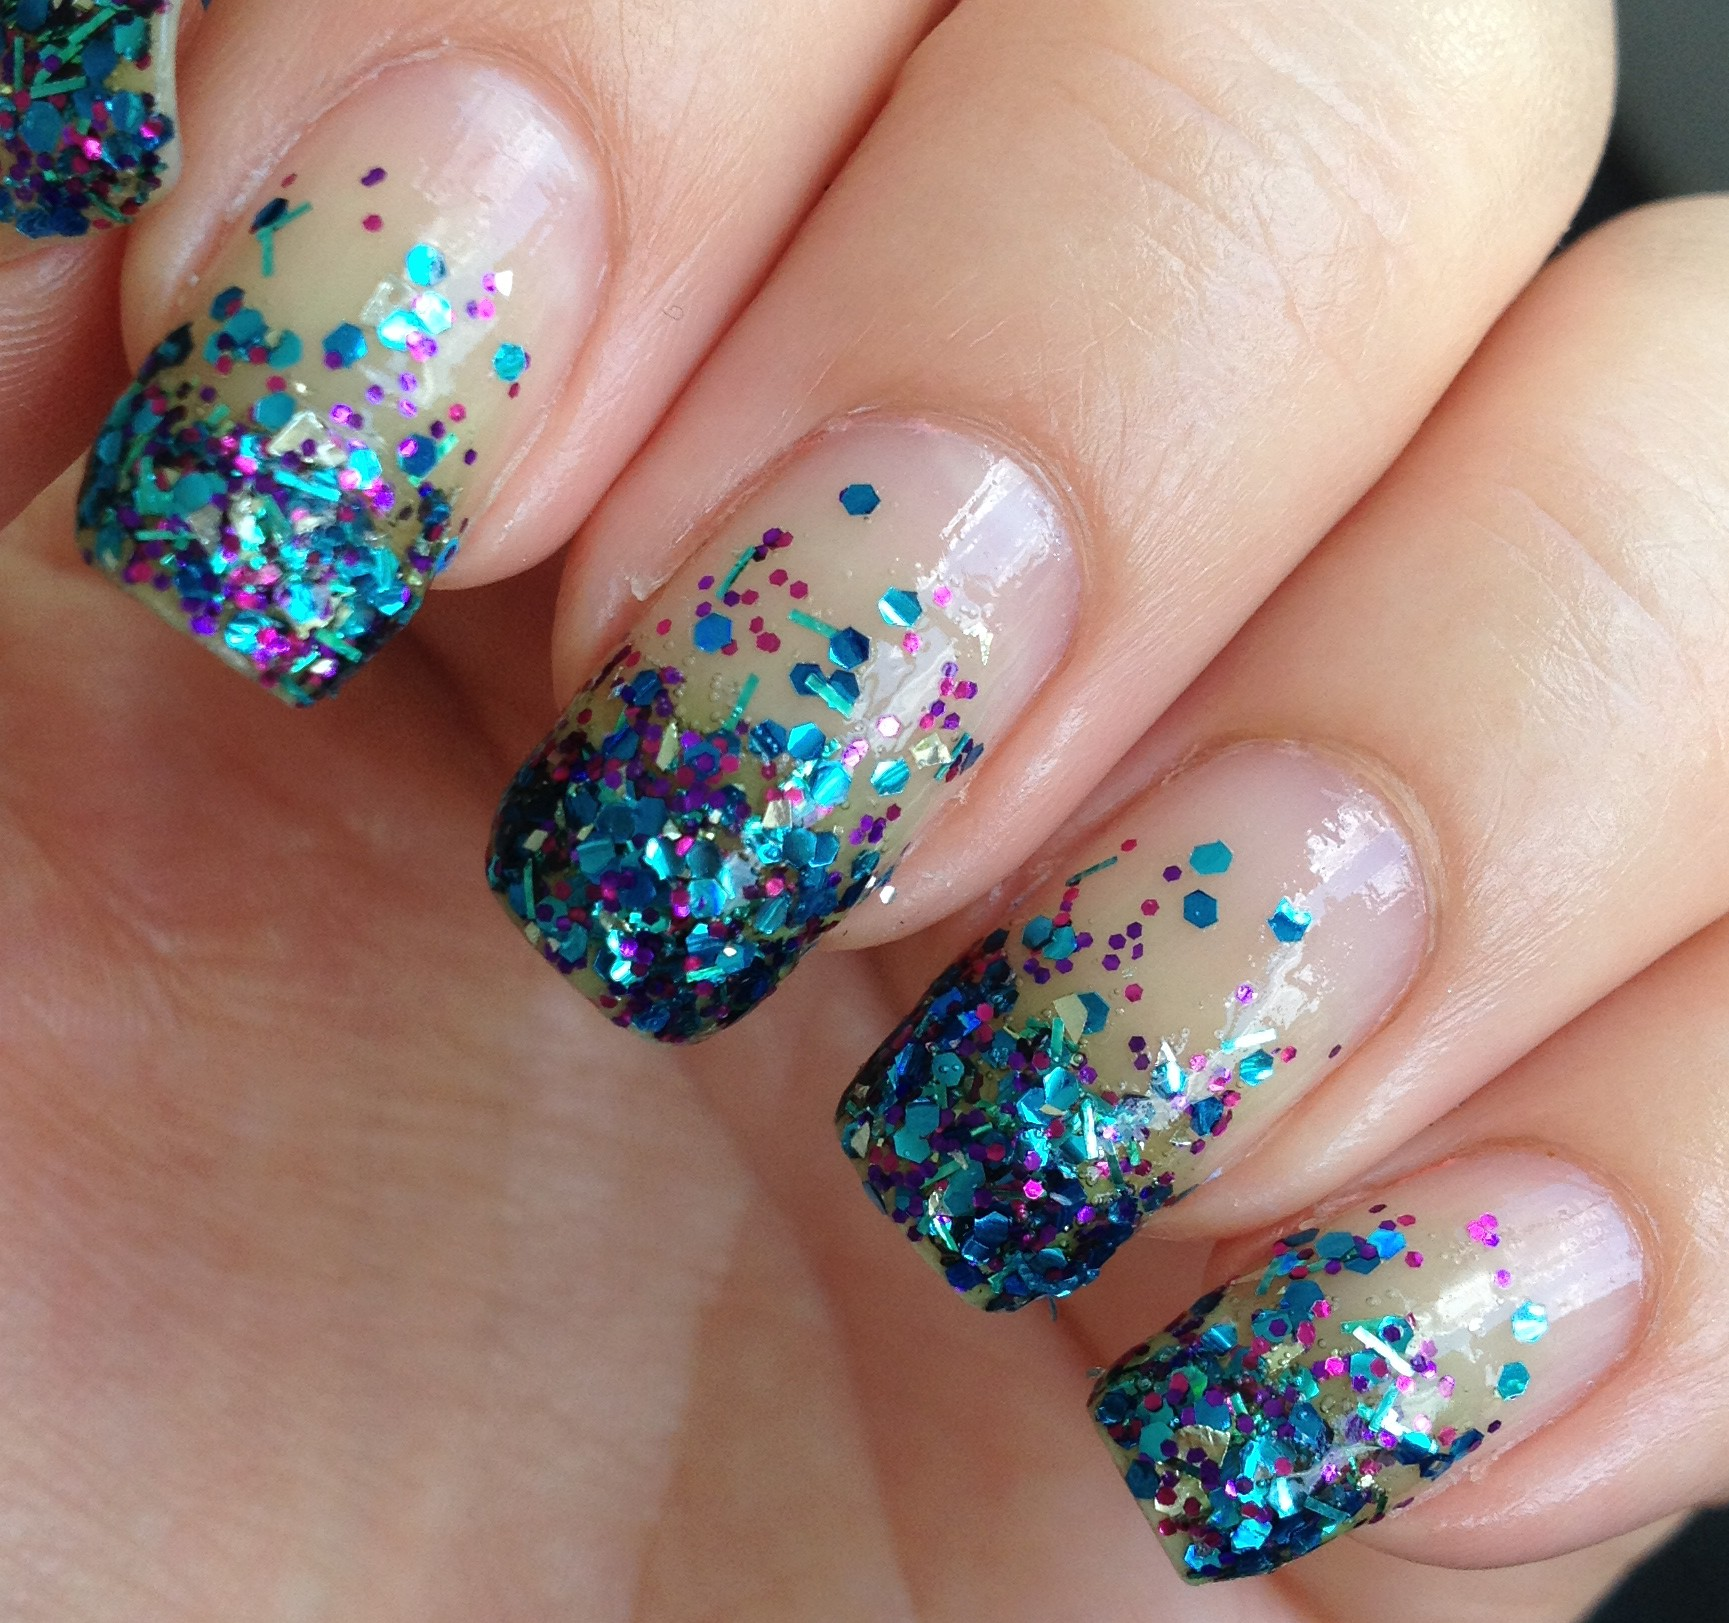 August Nails – Polish Me Snazzy